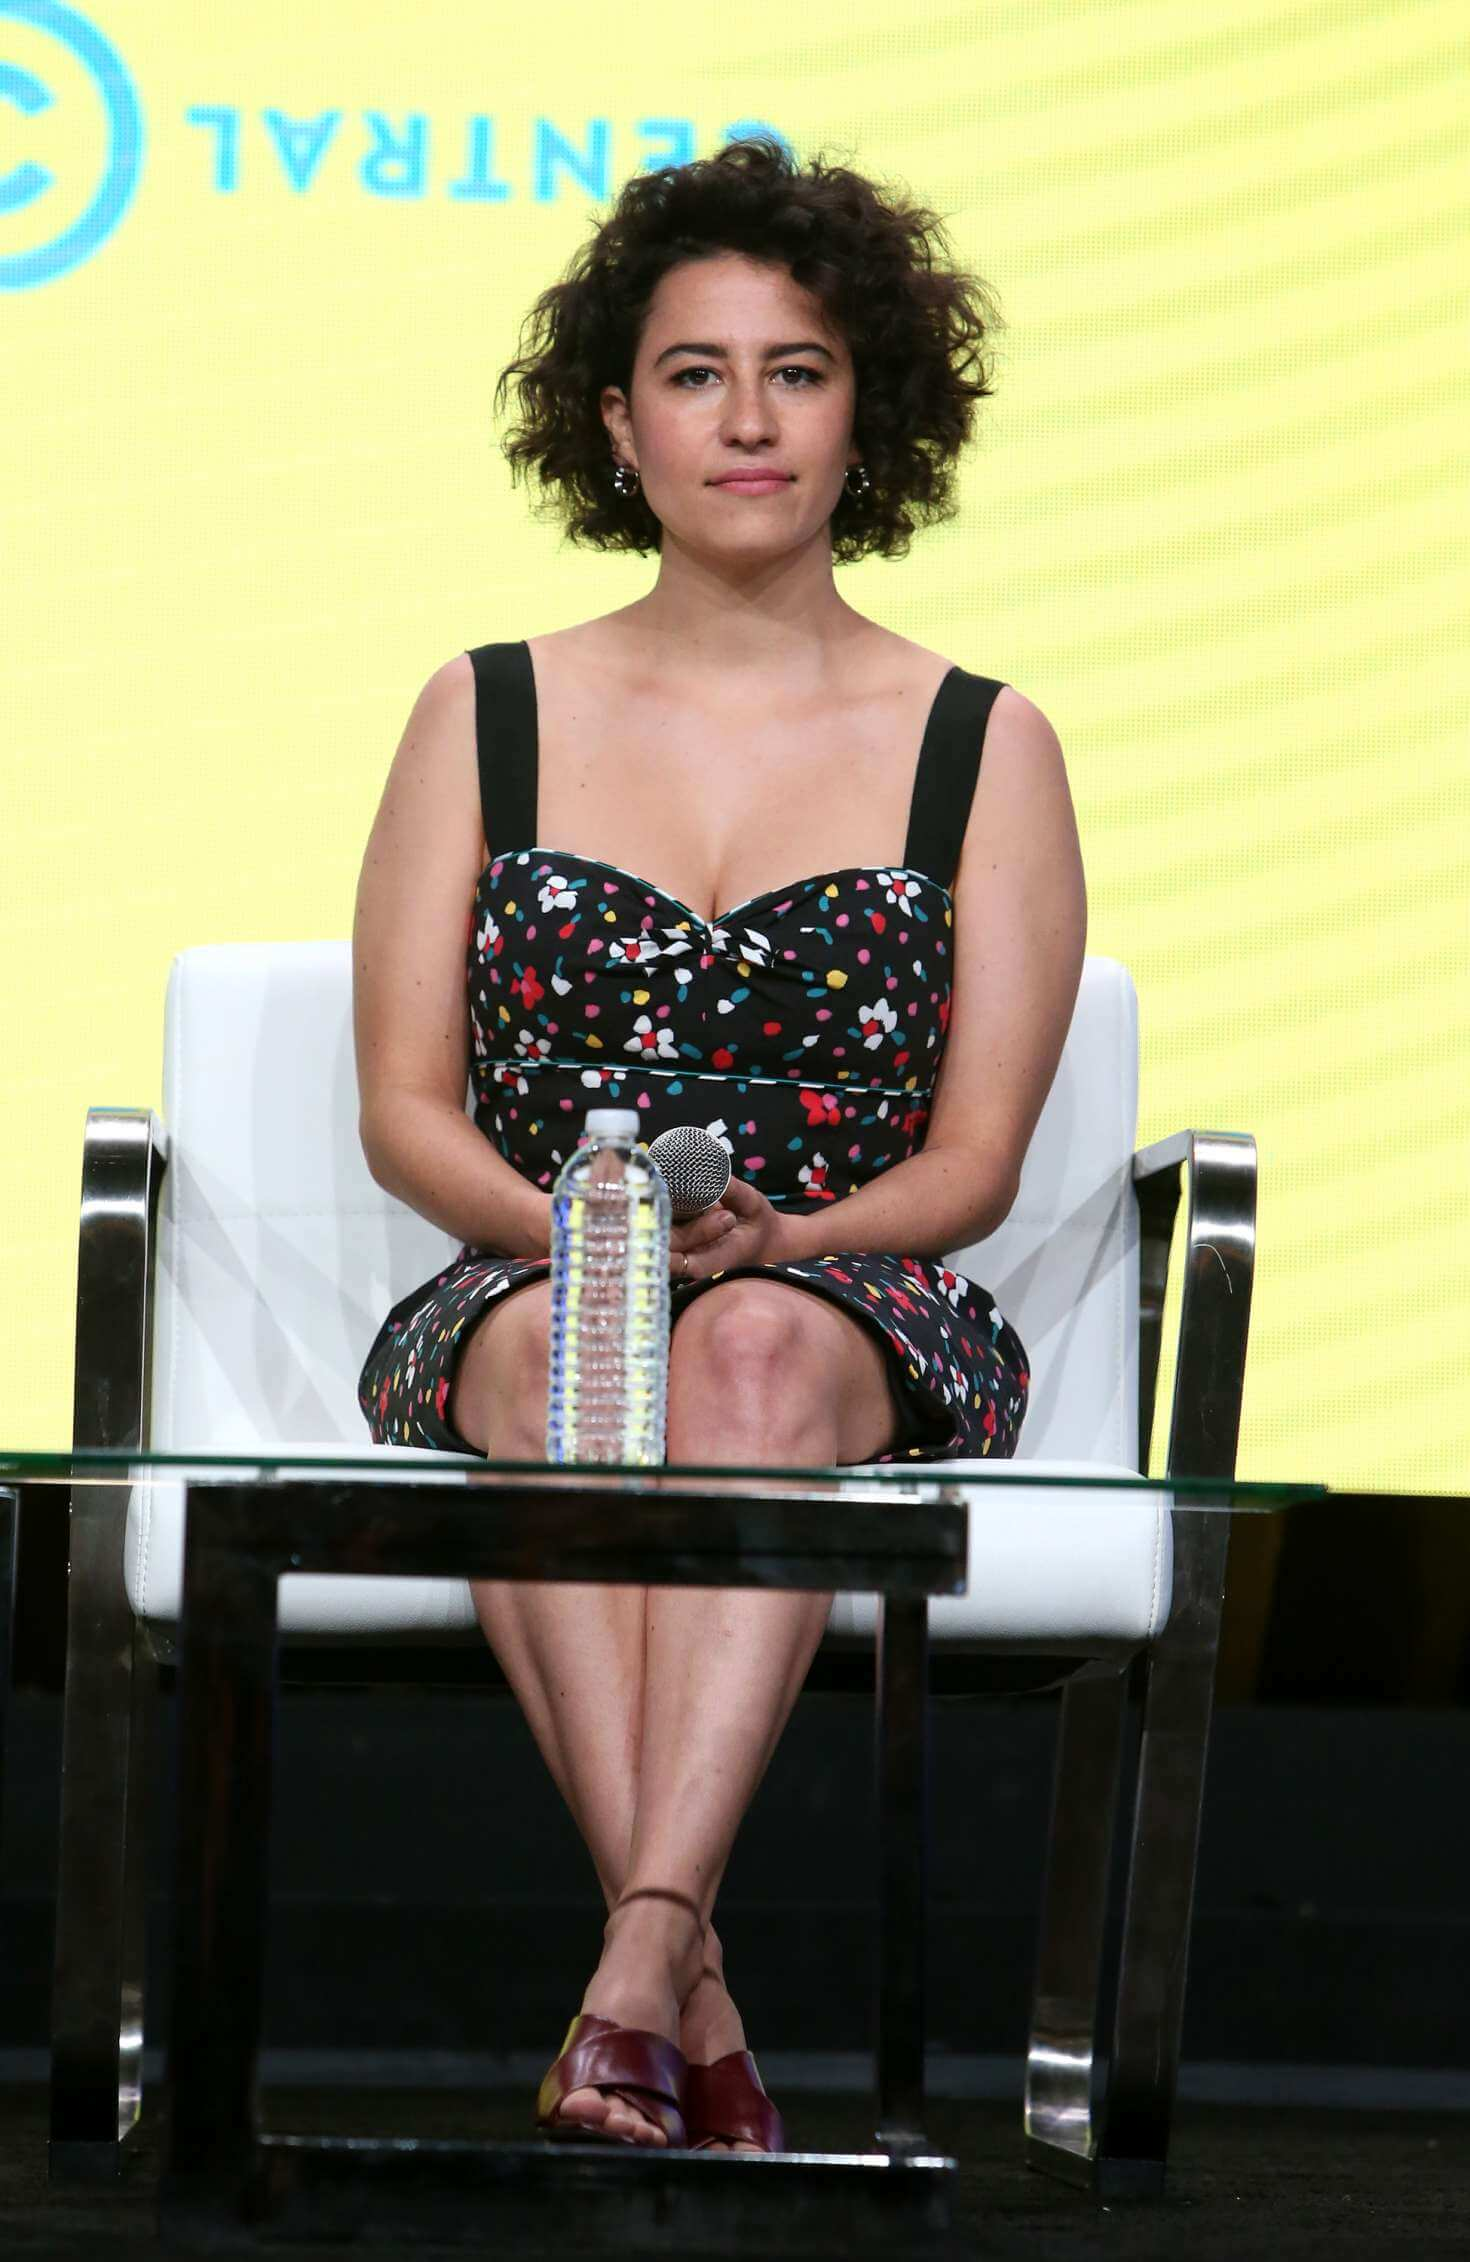 ilana-glazer-hot-awesome-pictures-2